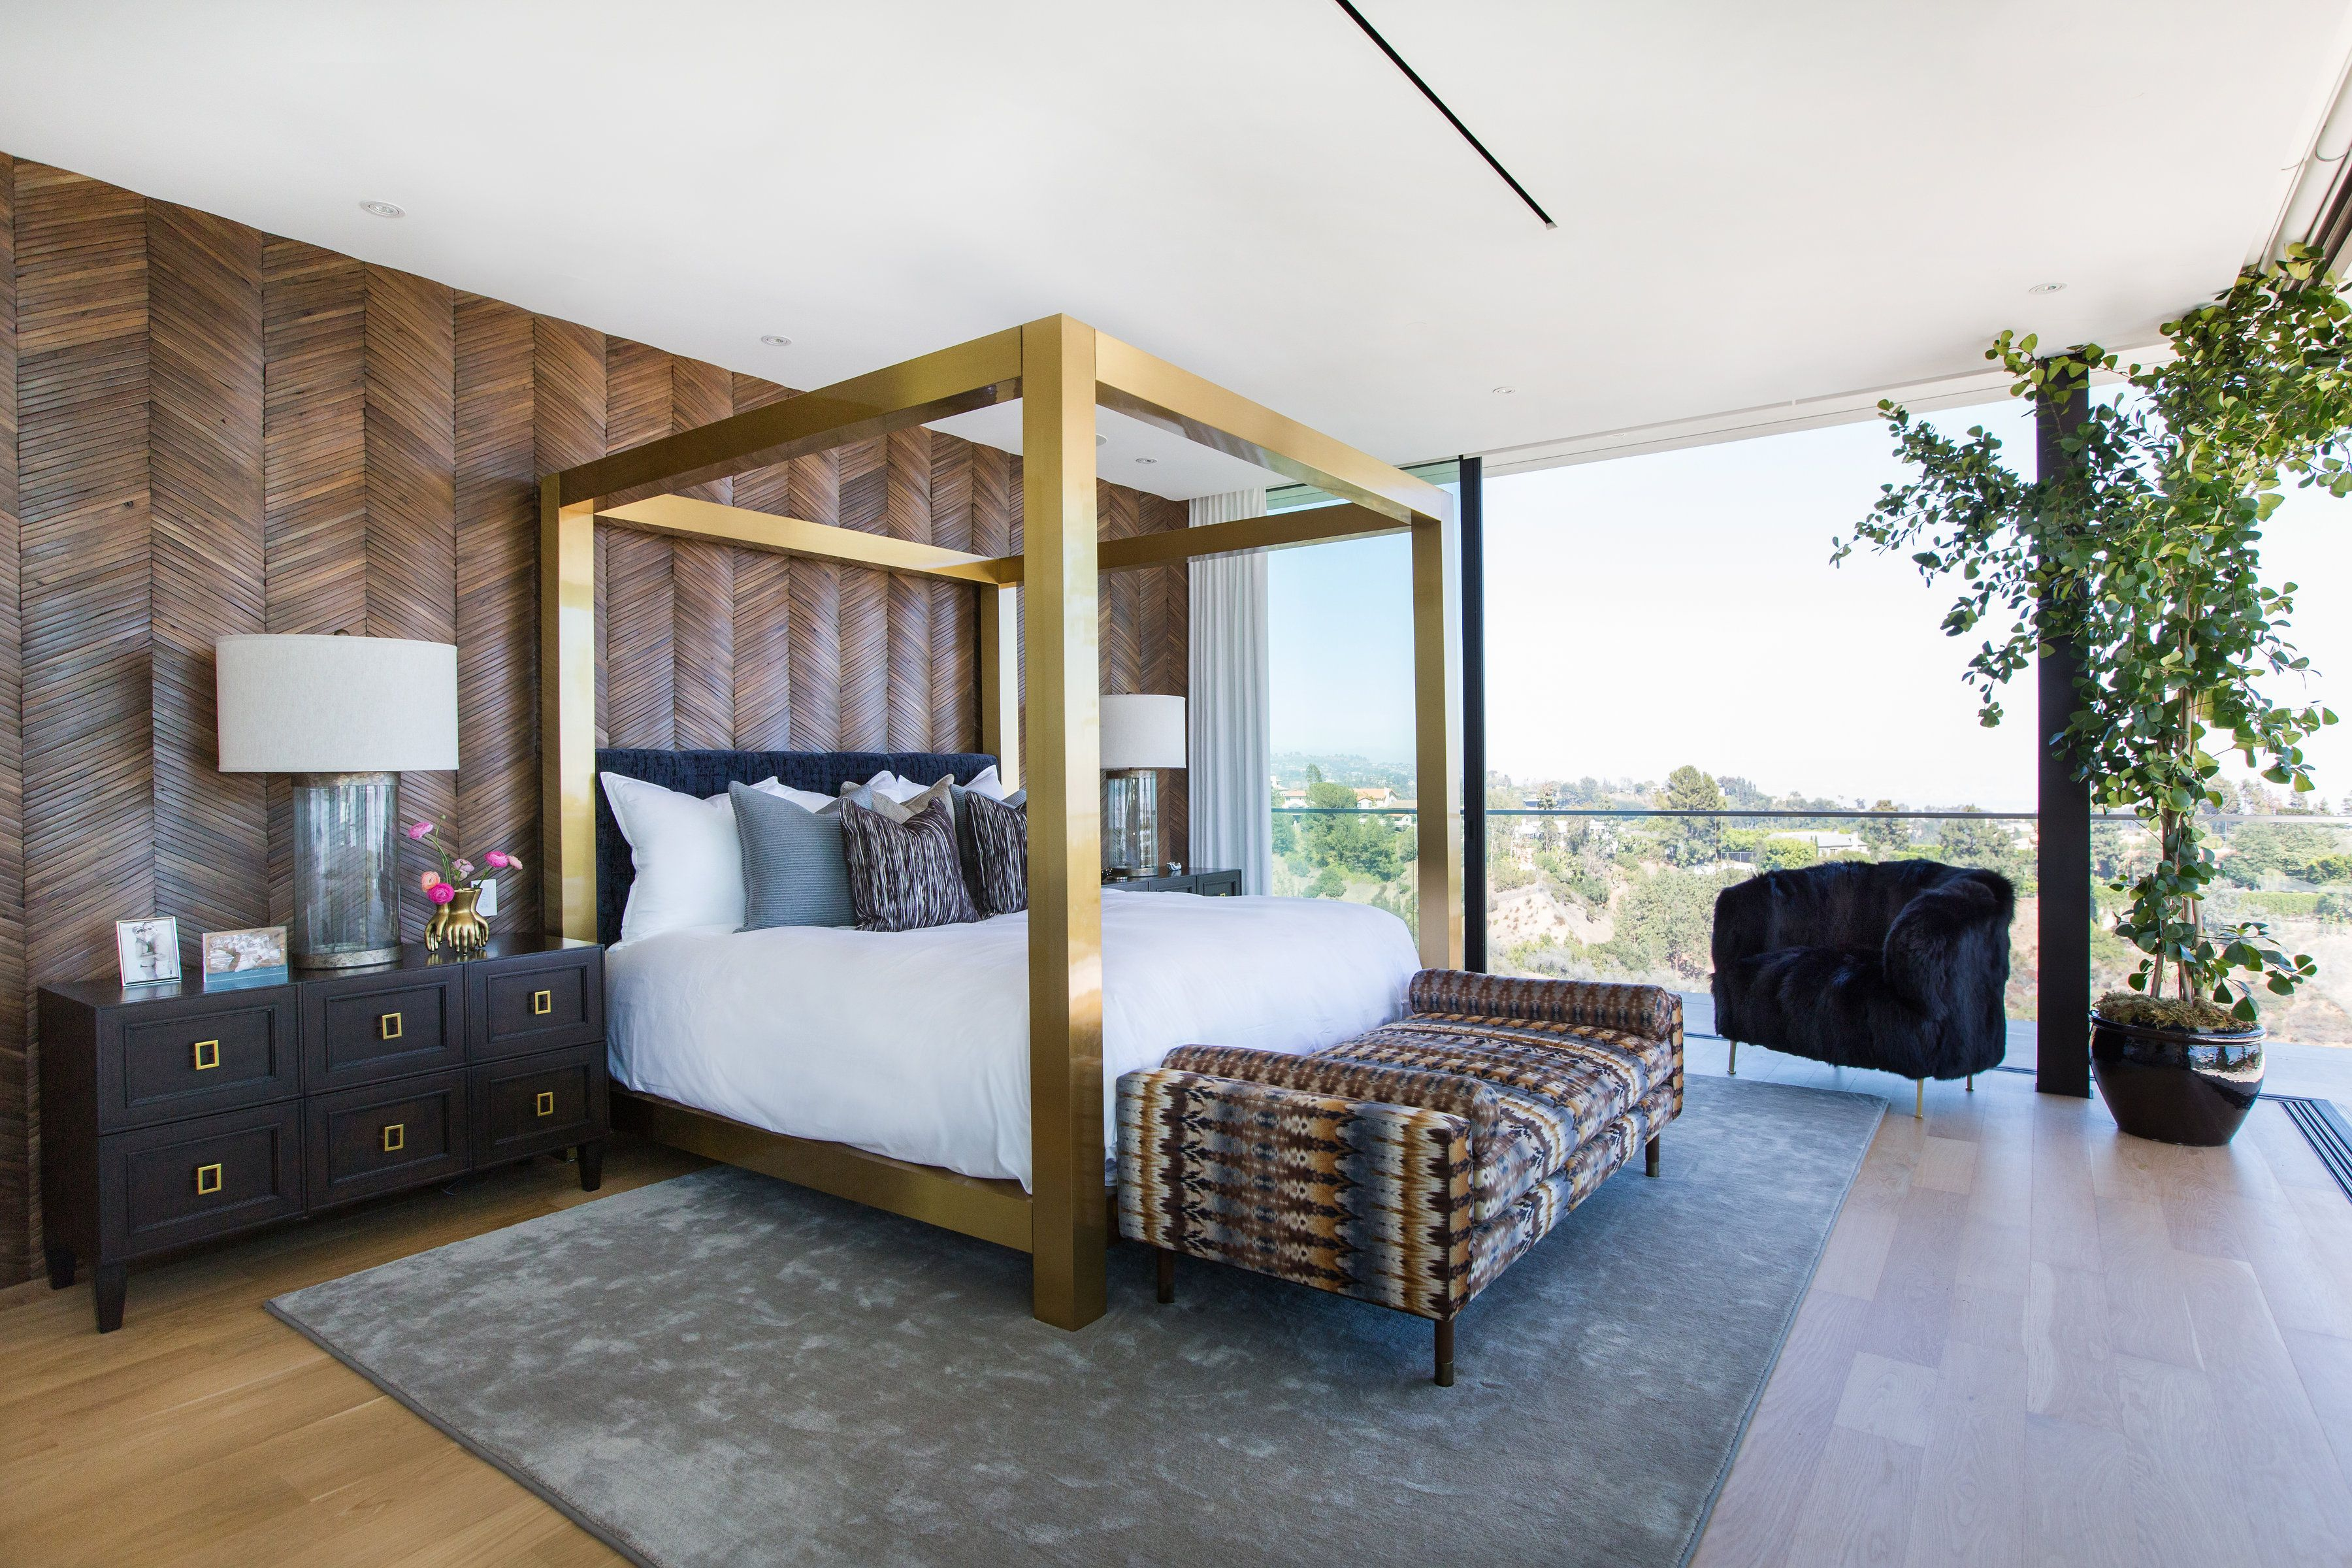 11 End Of Bed Design Ideas From Interior Designers - End Of Bed Bench